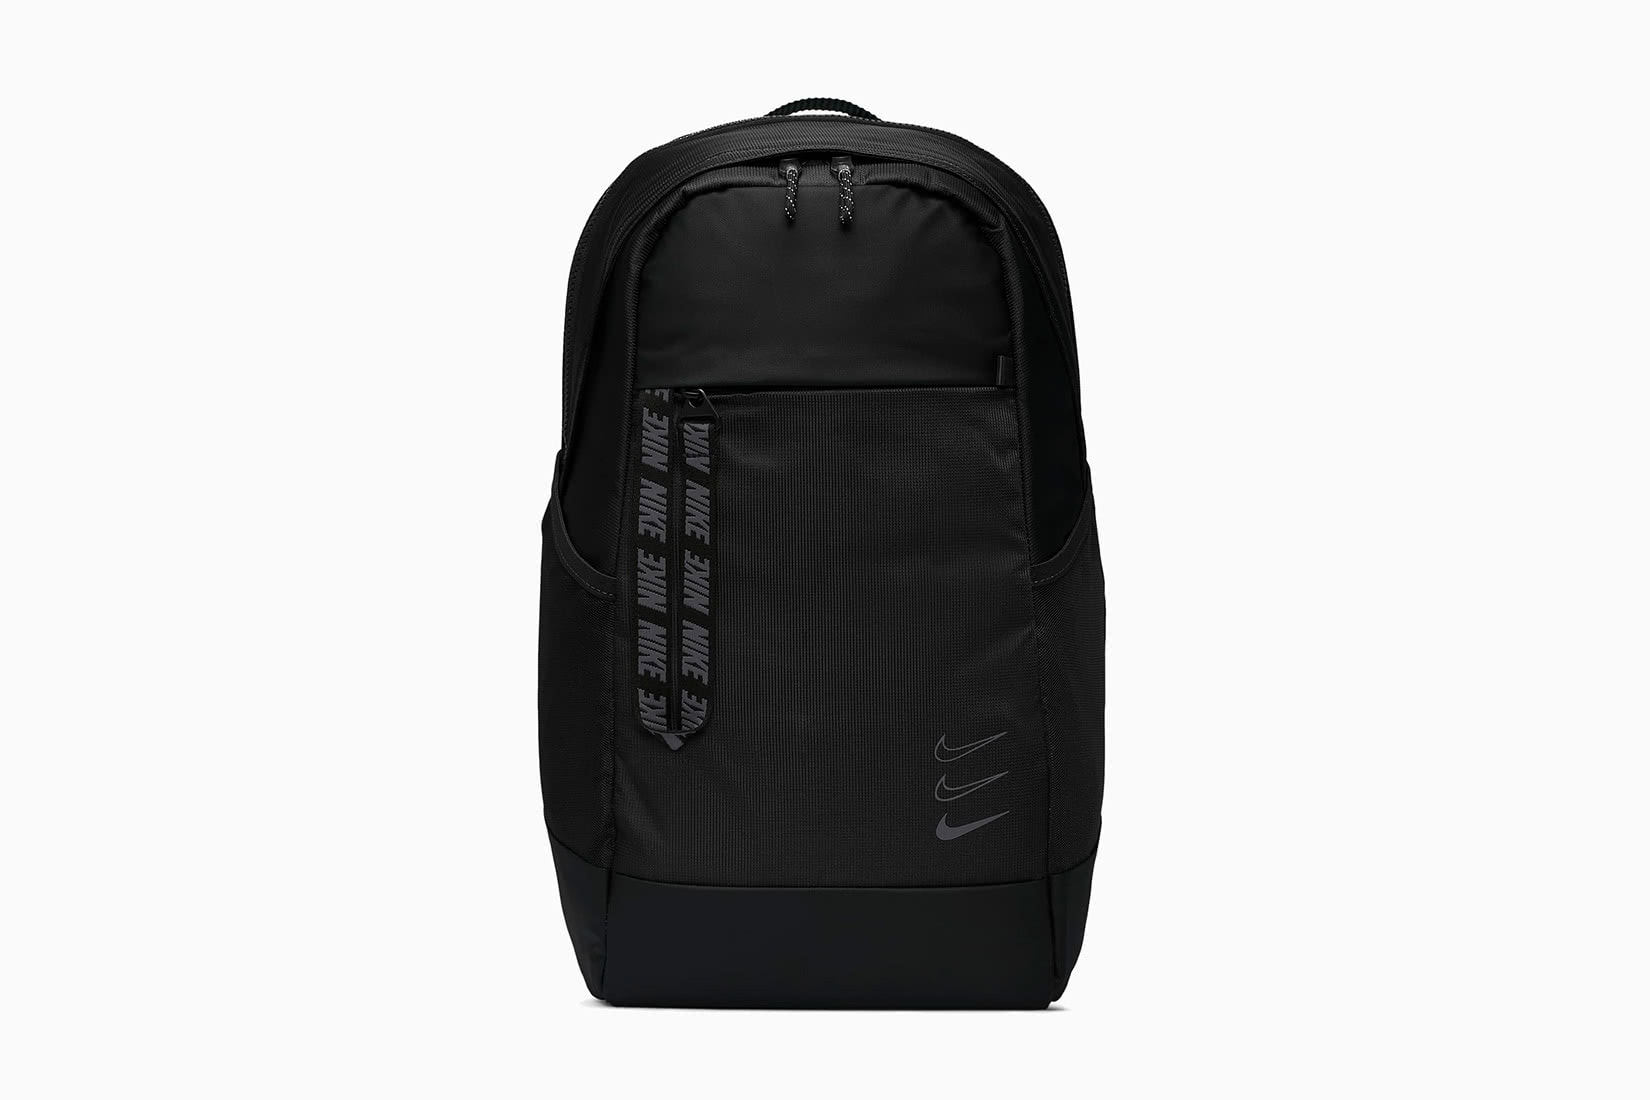 best edc backpack value nike essentials review - Luxe Digital